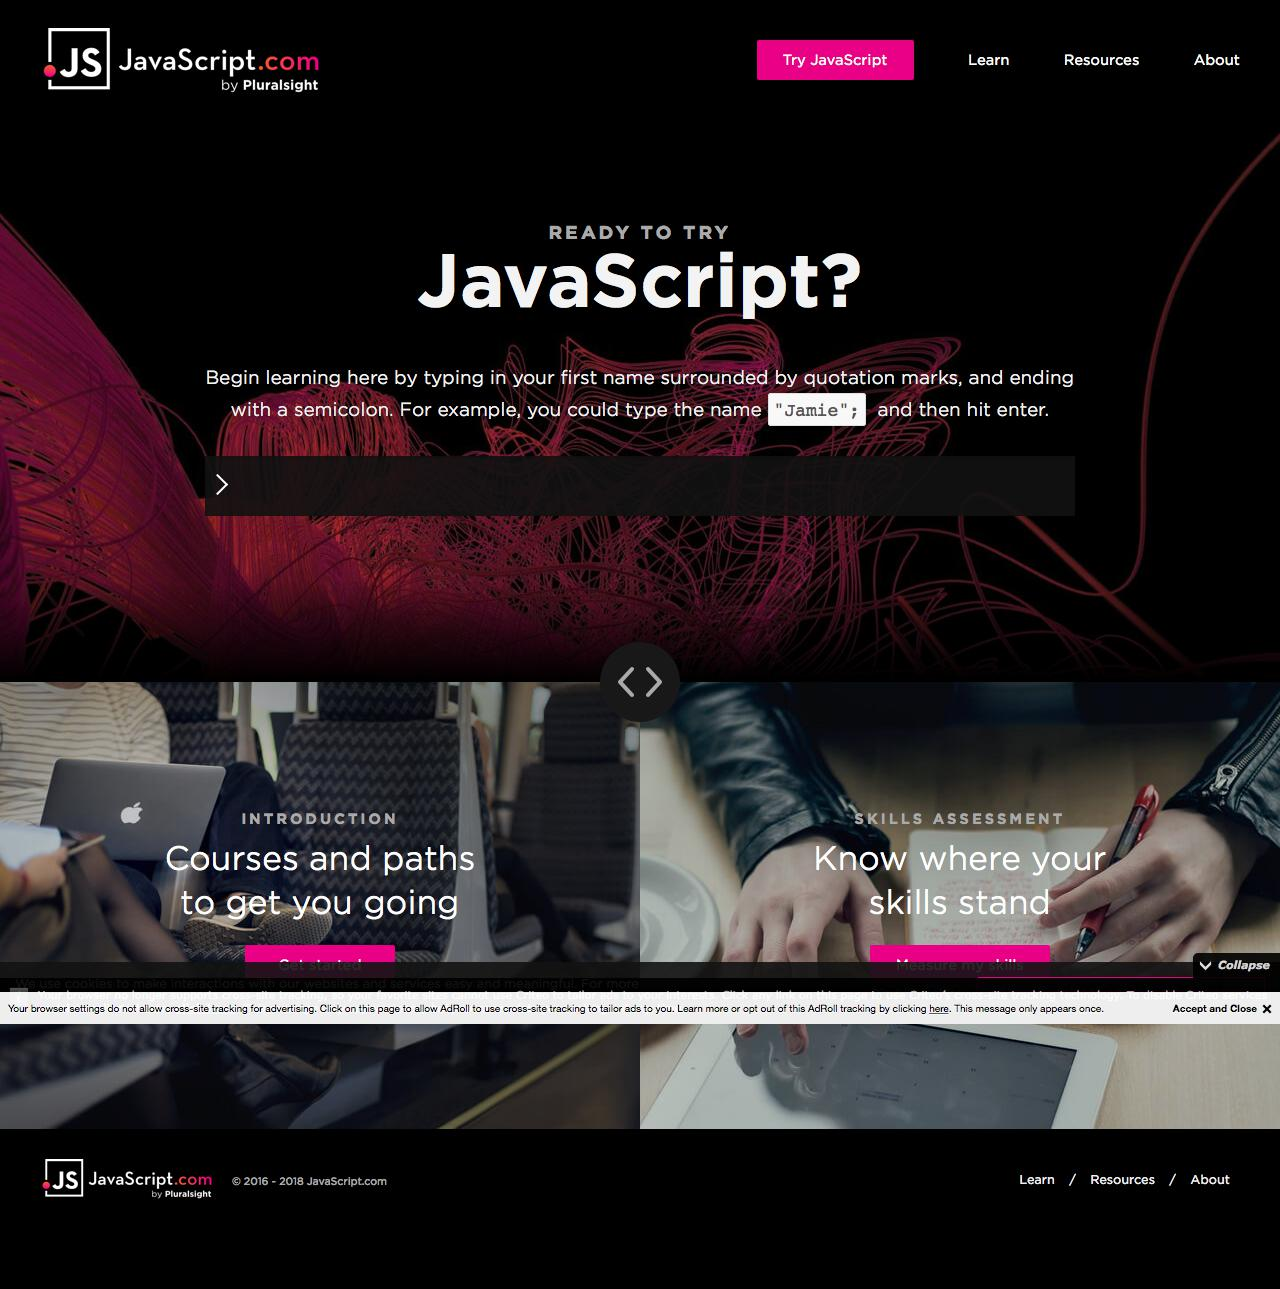 Screenshot of javascript.com - JavaScript.com - captured June 1, 2018